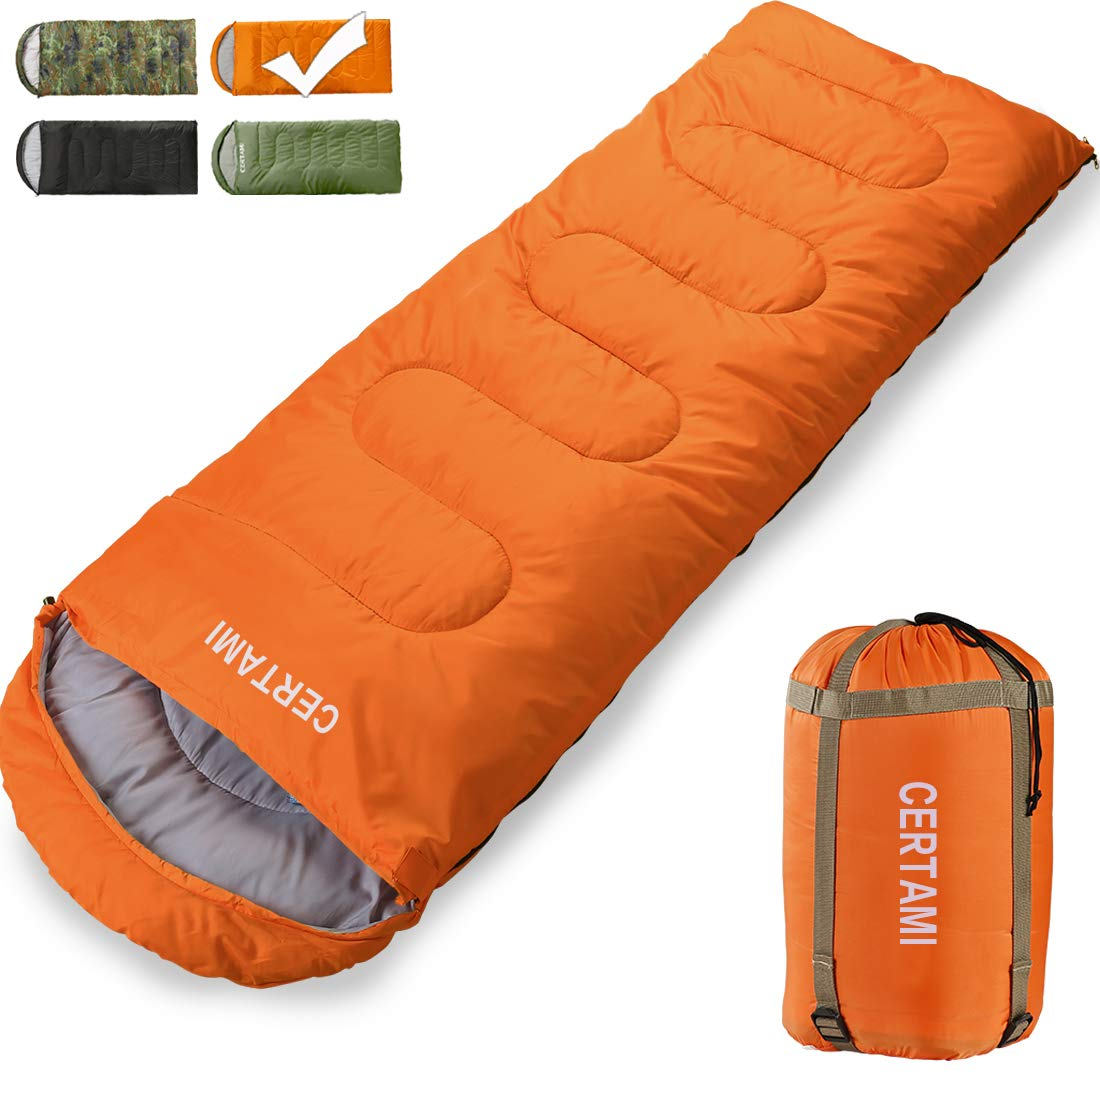 CER TAMI Sleeping Bag for Adults, Girls & Boys, Lightweight Waterproof Compact, Great for 4 Season Warm & Cold Weather, Perfect for Outdoor Backpacking, Camping, Hiking. (Orange/Right Zip) by CER TAMI